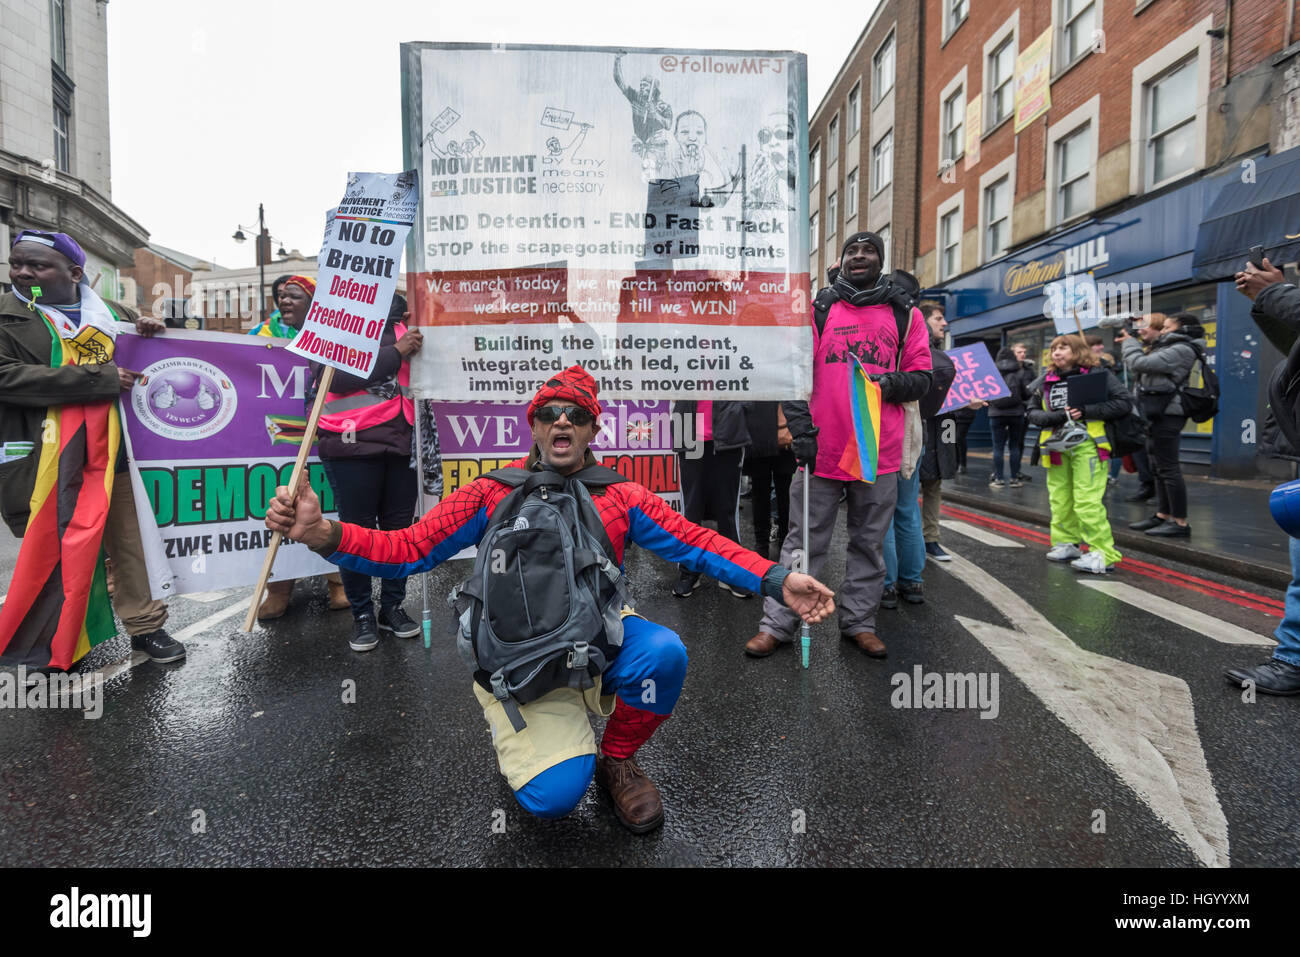 London, UK. 14th January 2017. A man poses in front of the Movement for Justic march in Brixton against mass deportations - Stock Image